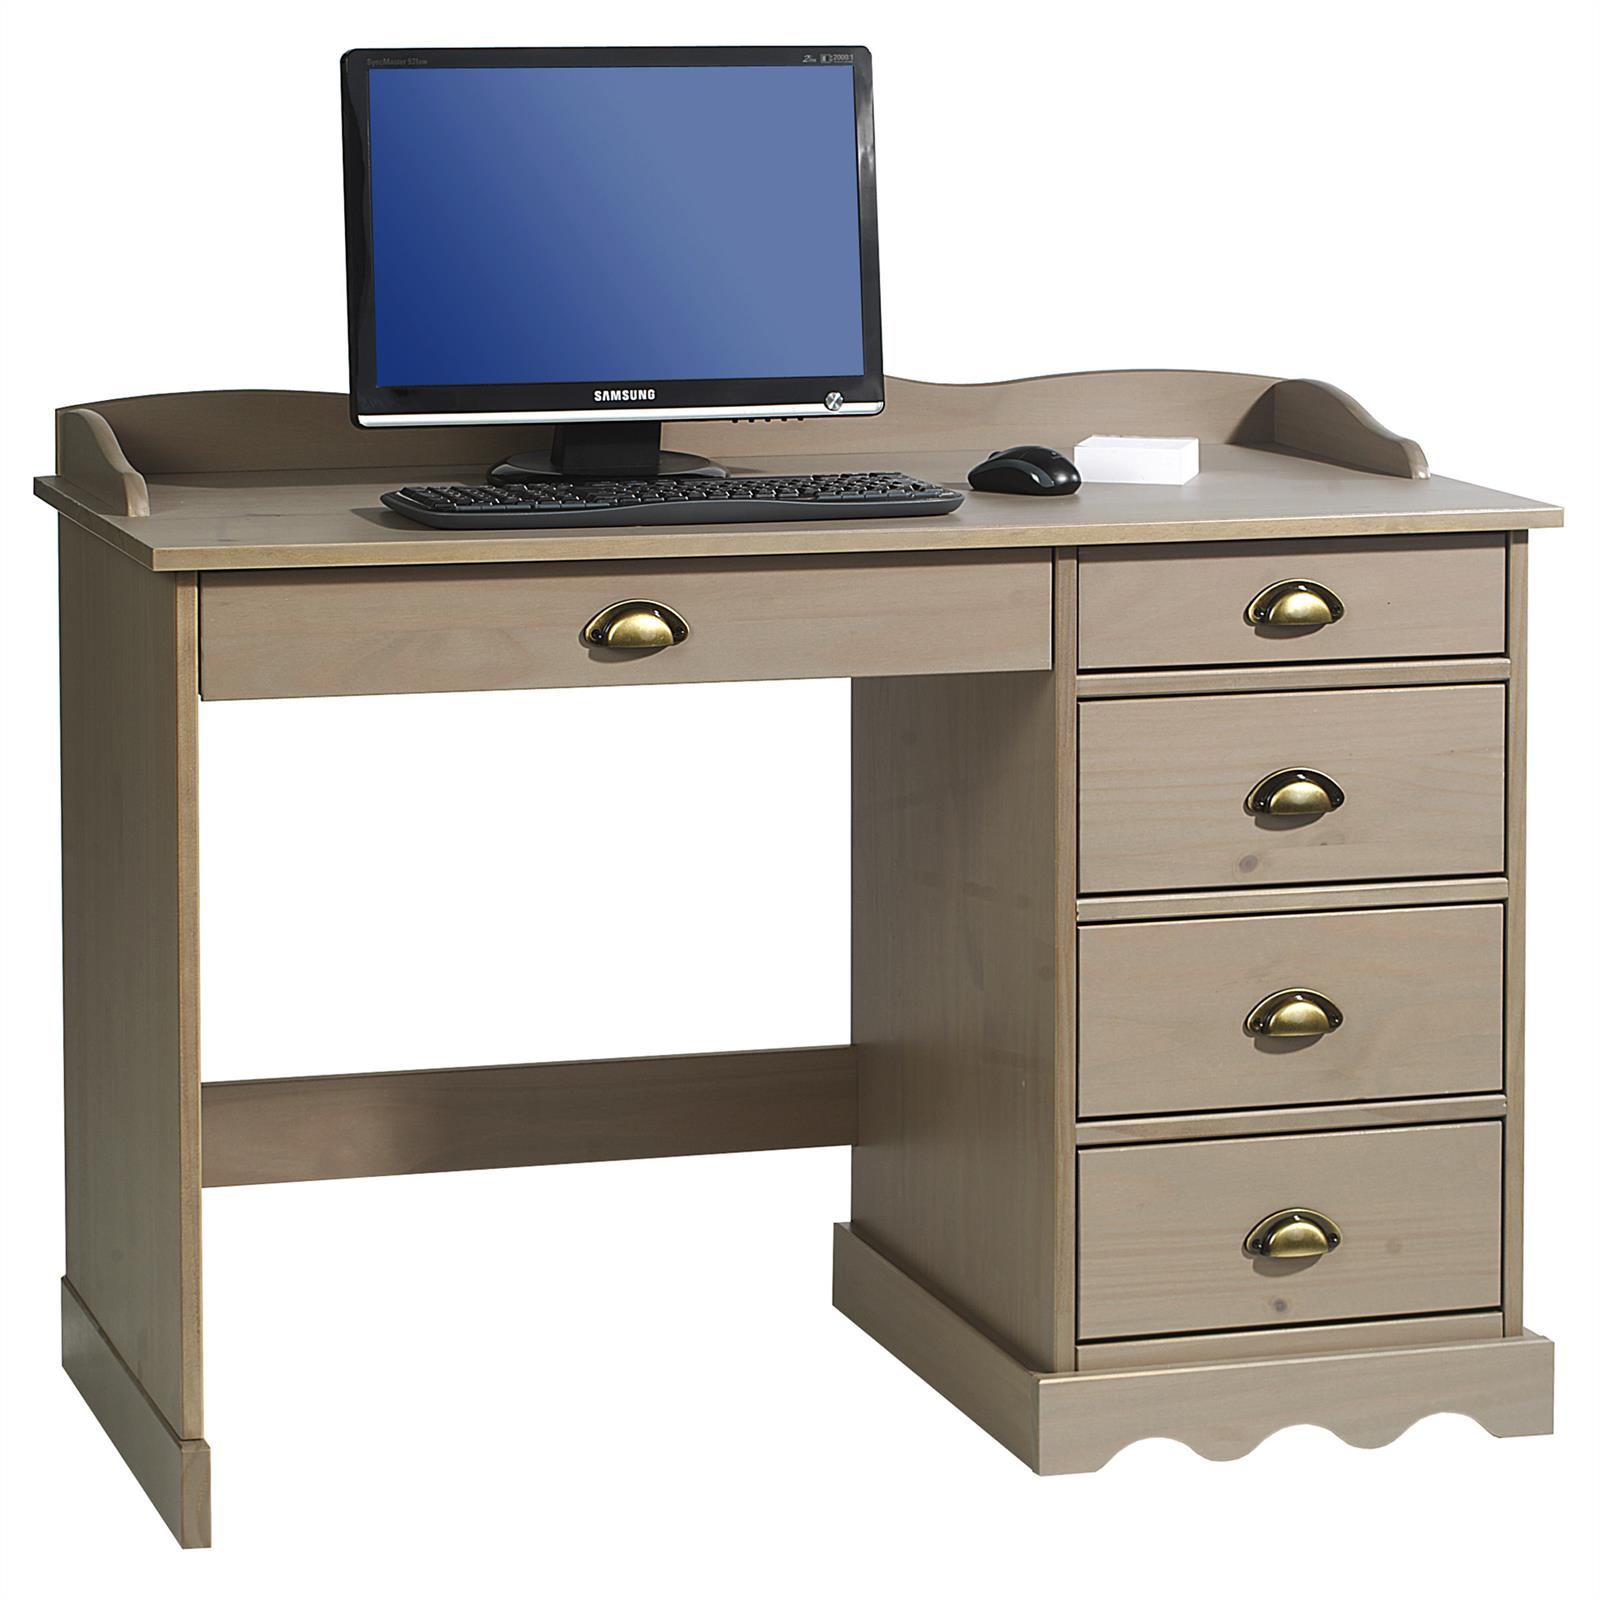 bureau en pin massif colette avec corniche lasur taupe mobil meubles. Black Bedroom Furniture Sets. Home Design Ideas